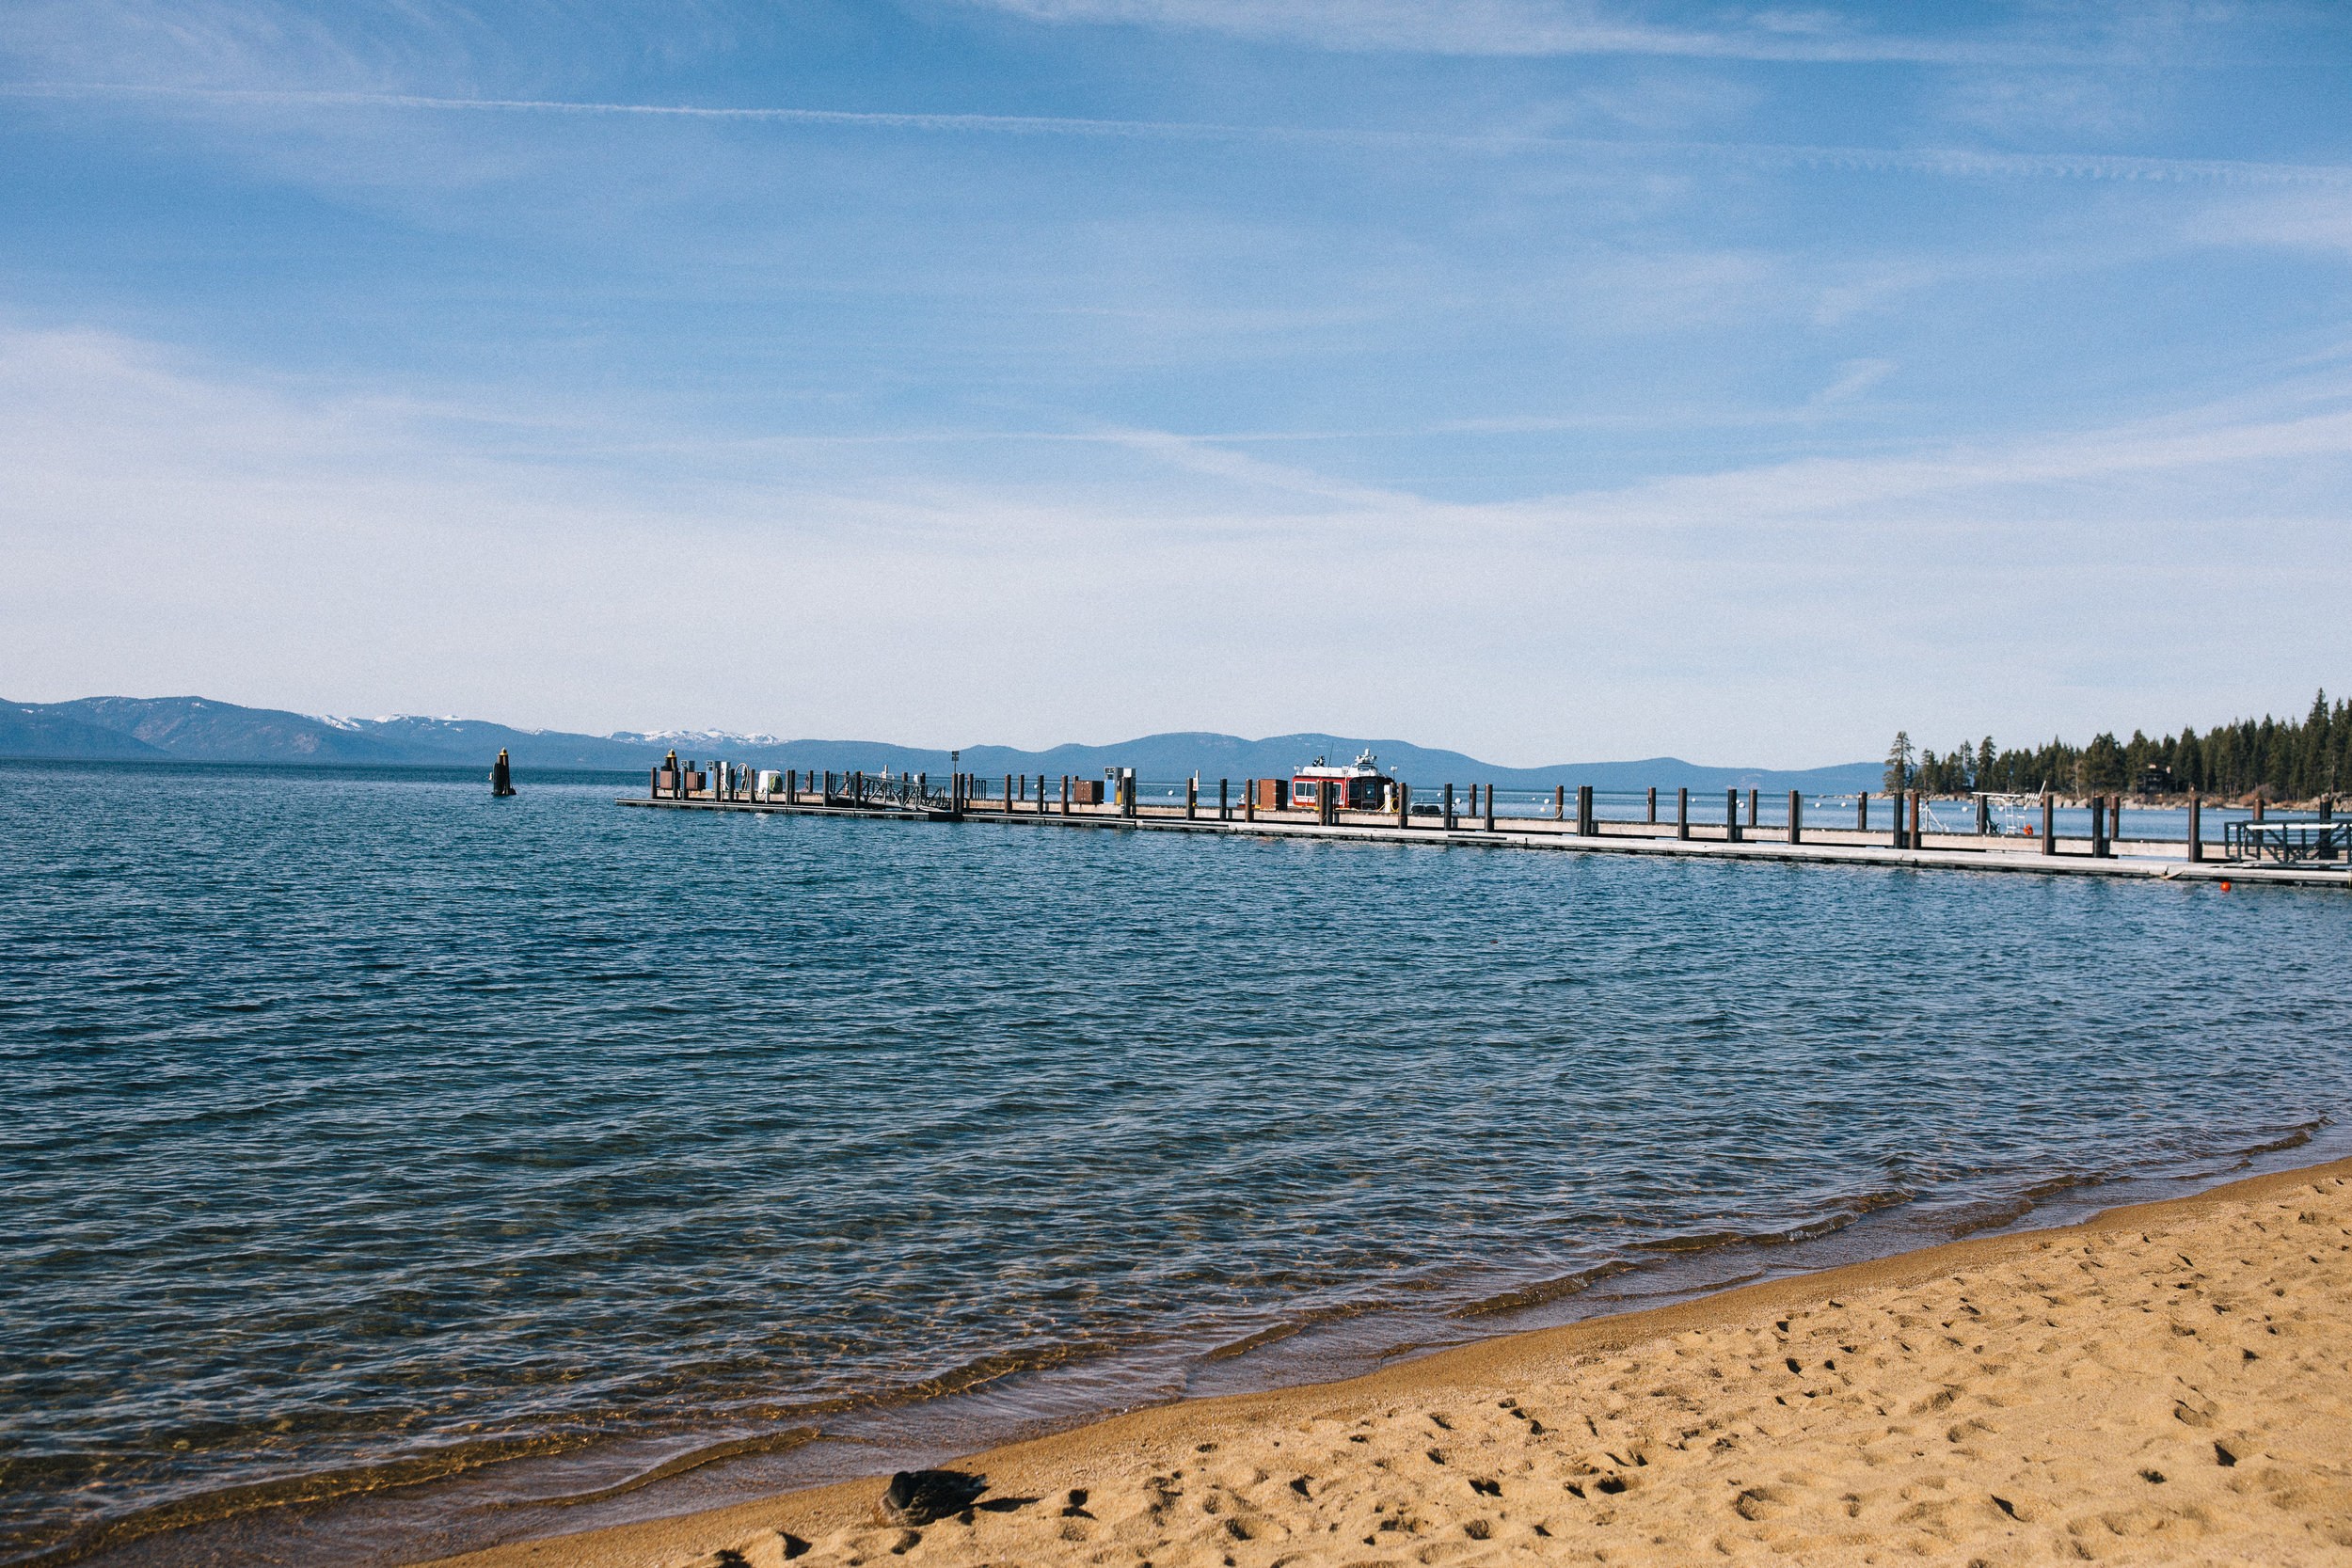 2018_01_01 Tahoe Trip 2018 Edited Full Resolution 0003.jpg